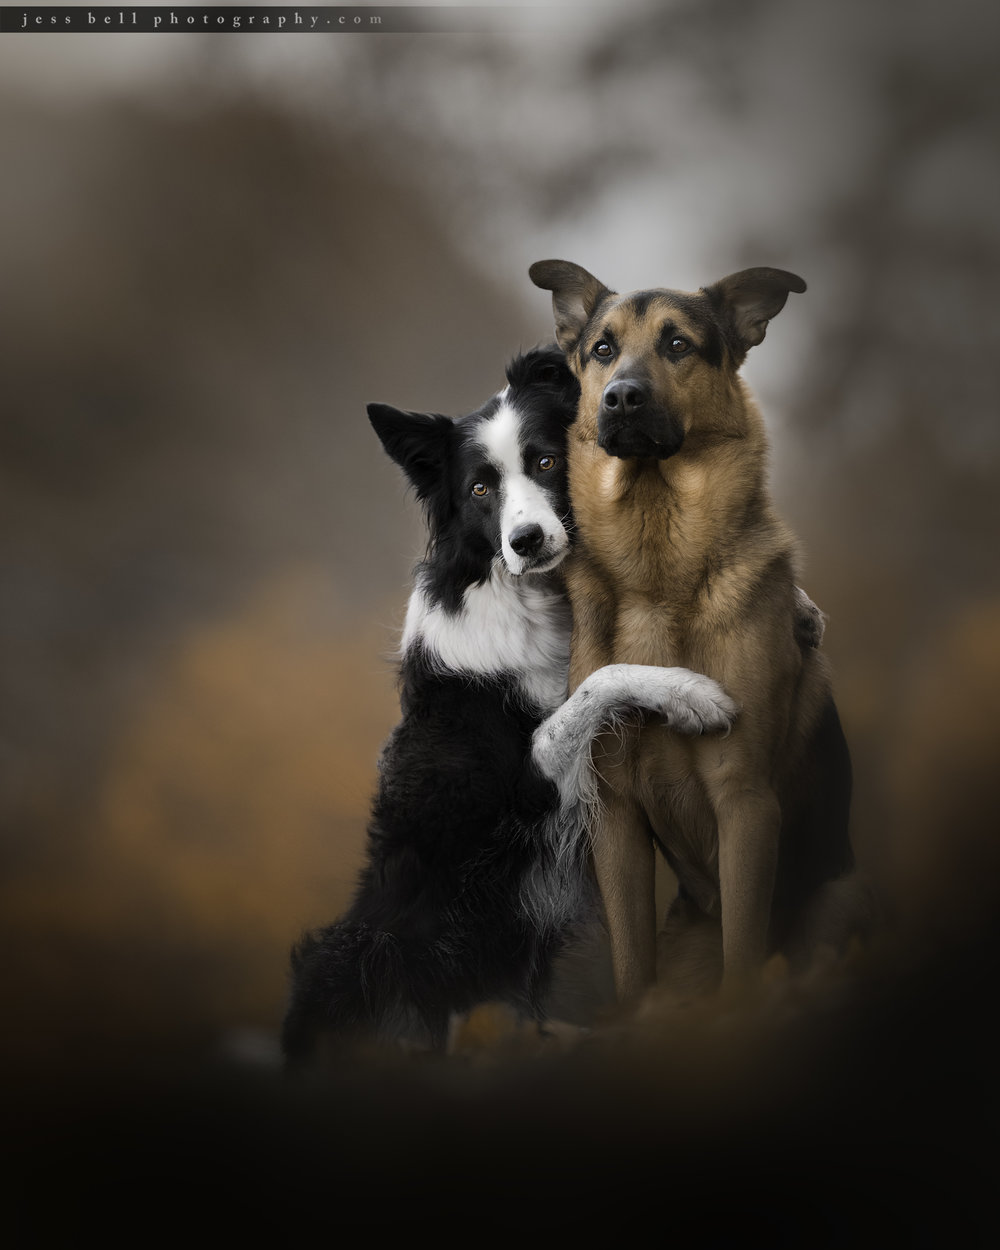 Toronto Dog Photographer Jess Bell specializes in capturing special moments.